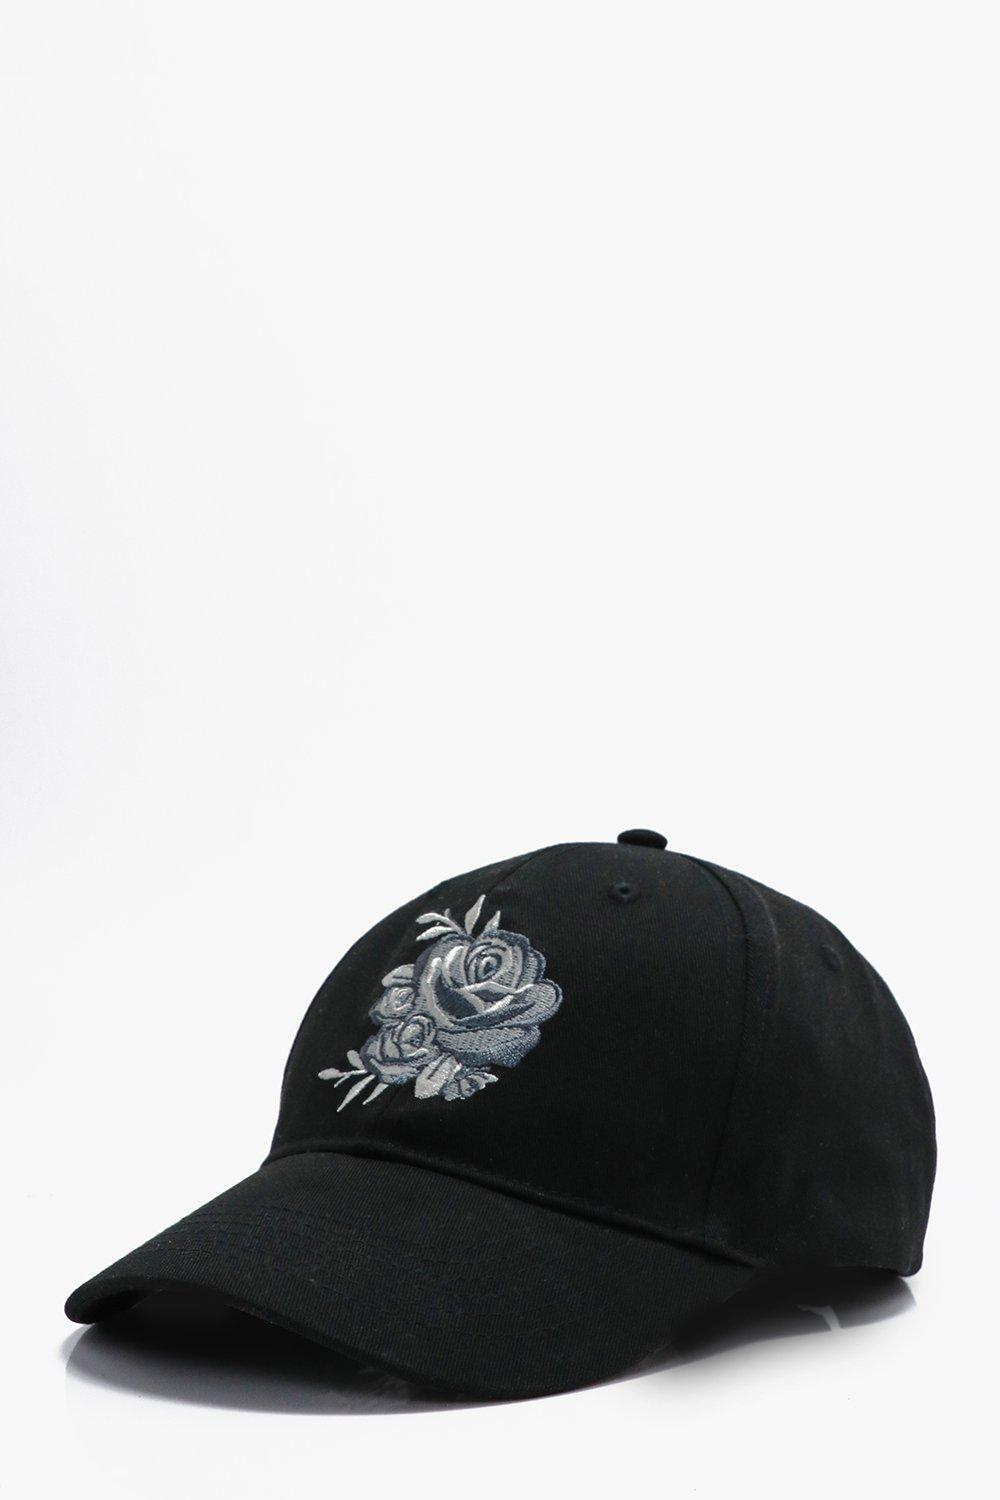 Rose Embroidered Baseball Cap - black - Silver Ros